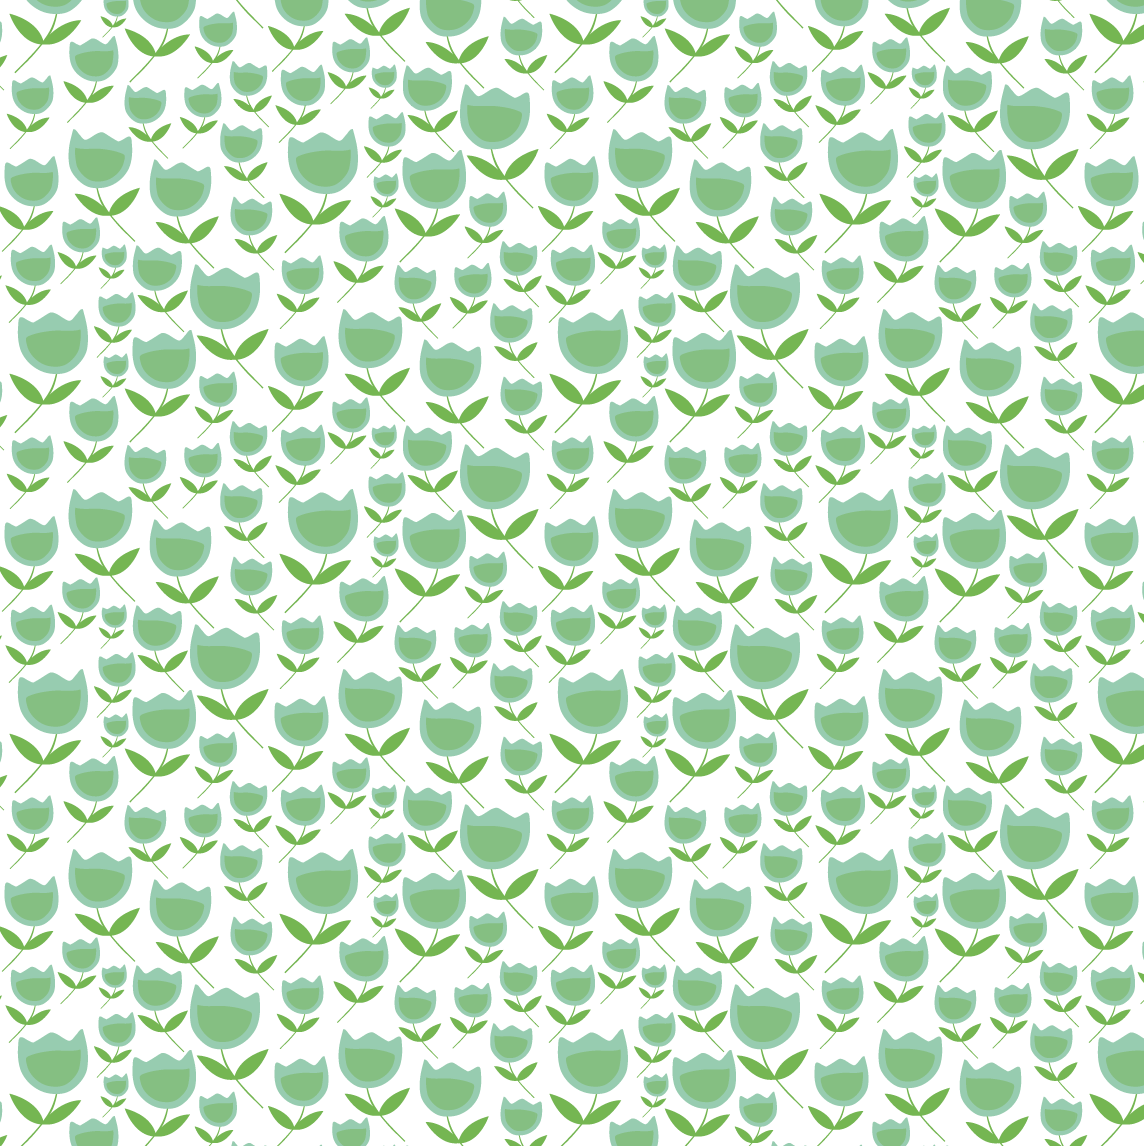 design surface pattern tulip flowers green nonna design illustration